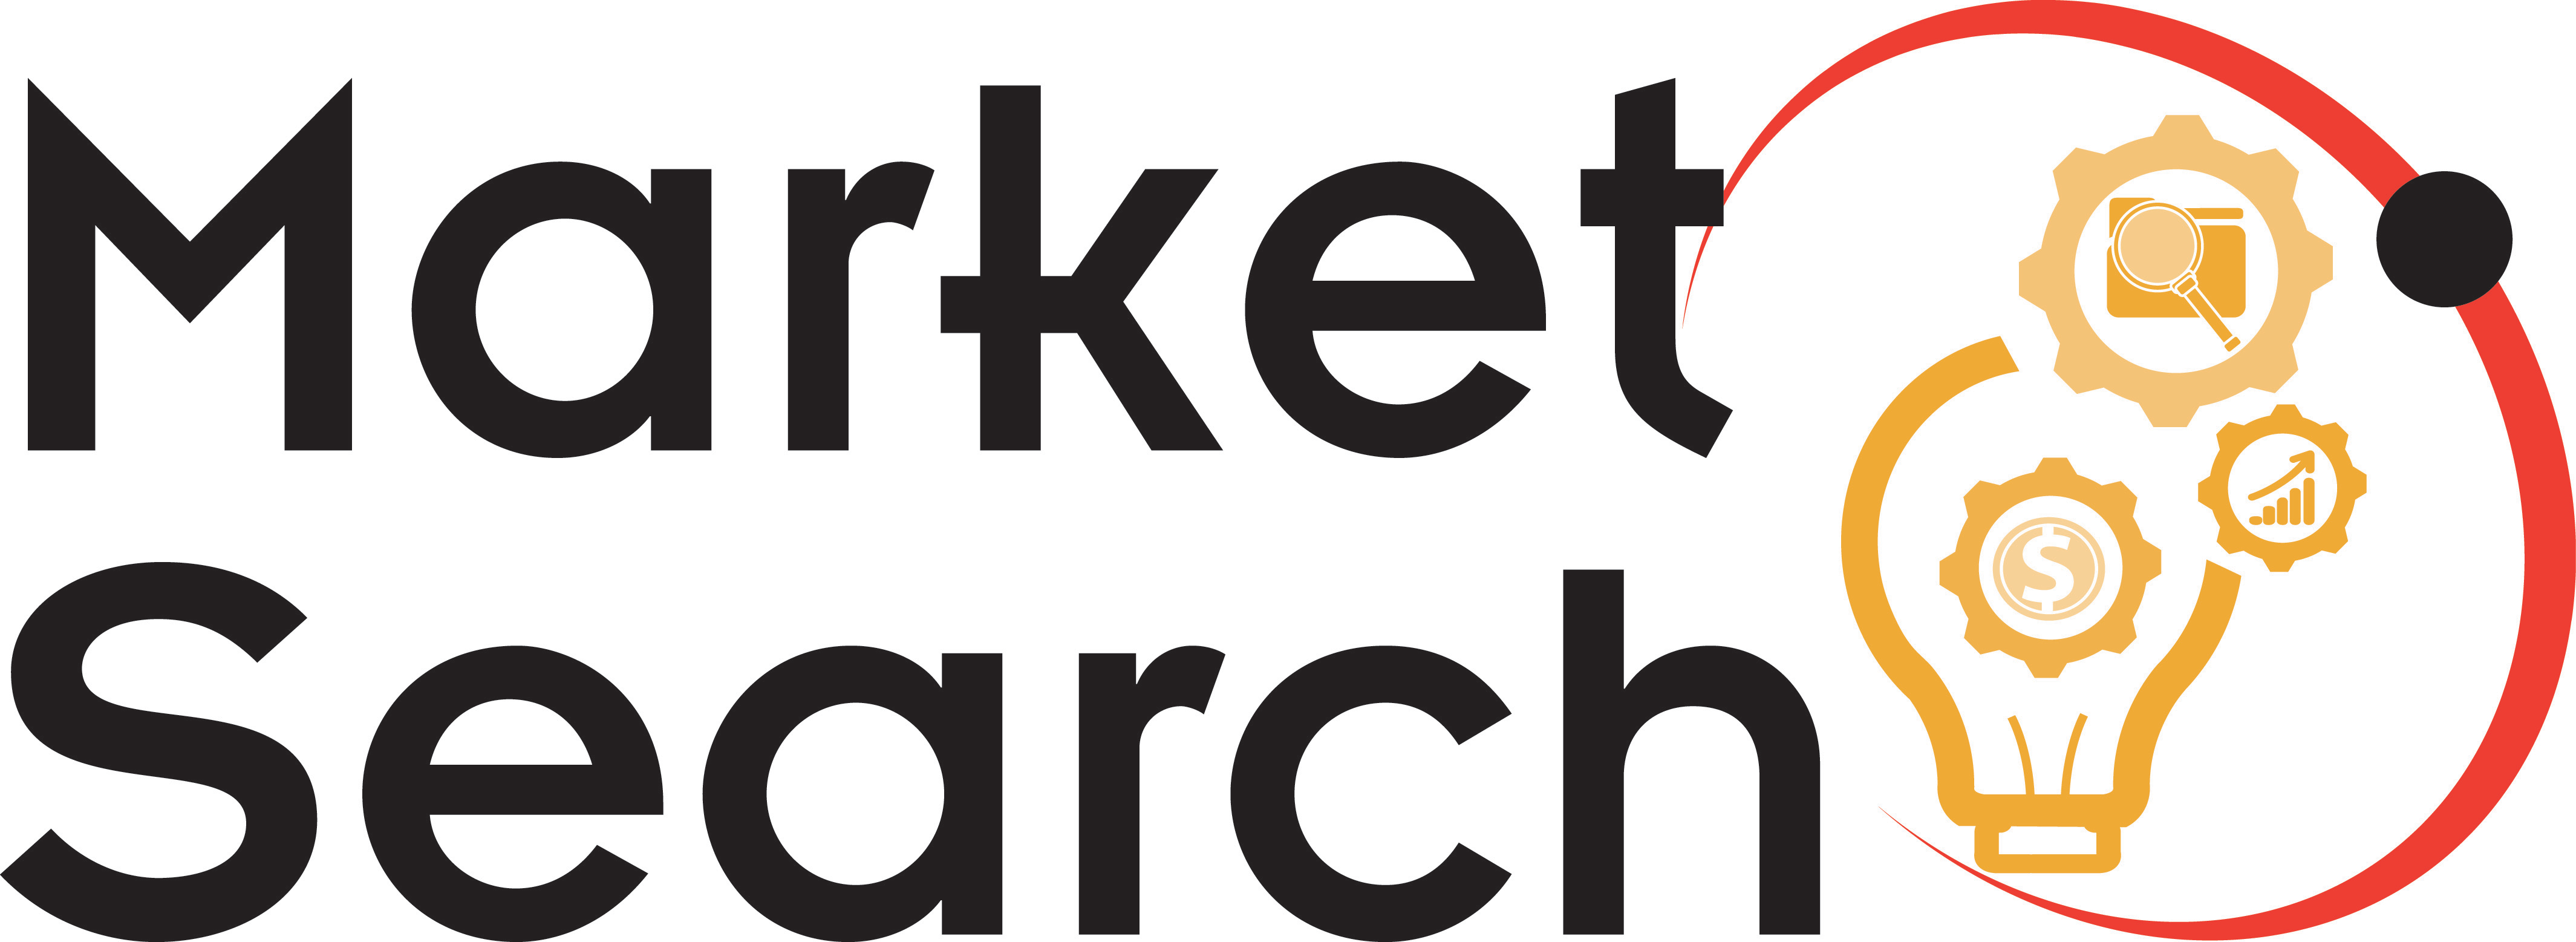 6.1.2_Entrepreneurial%20Resources_Market%20Search_logo.png